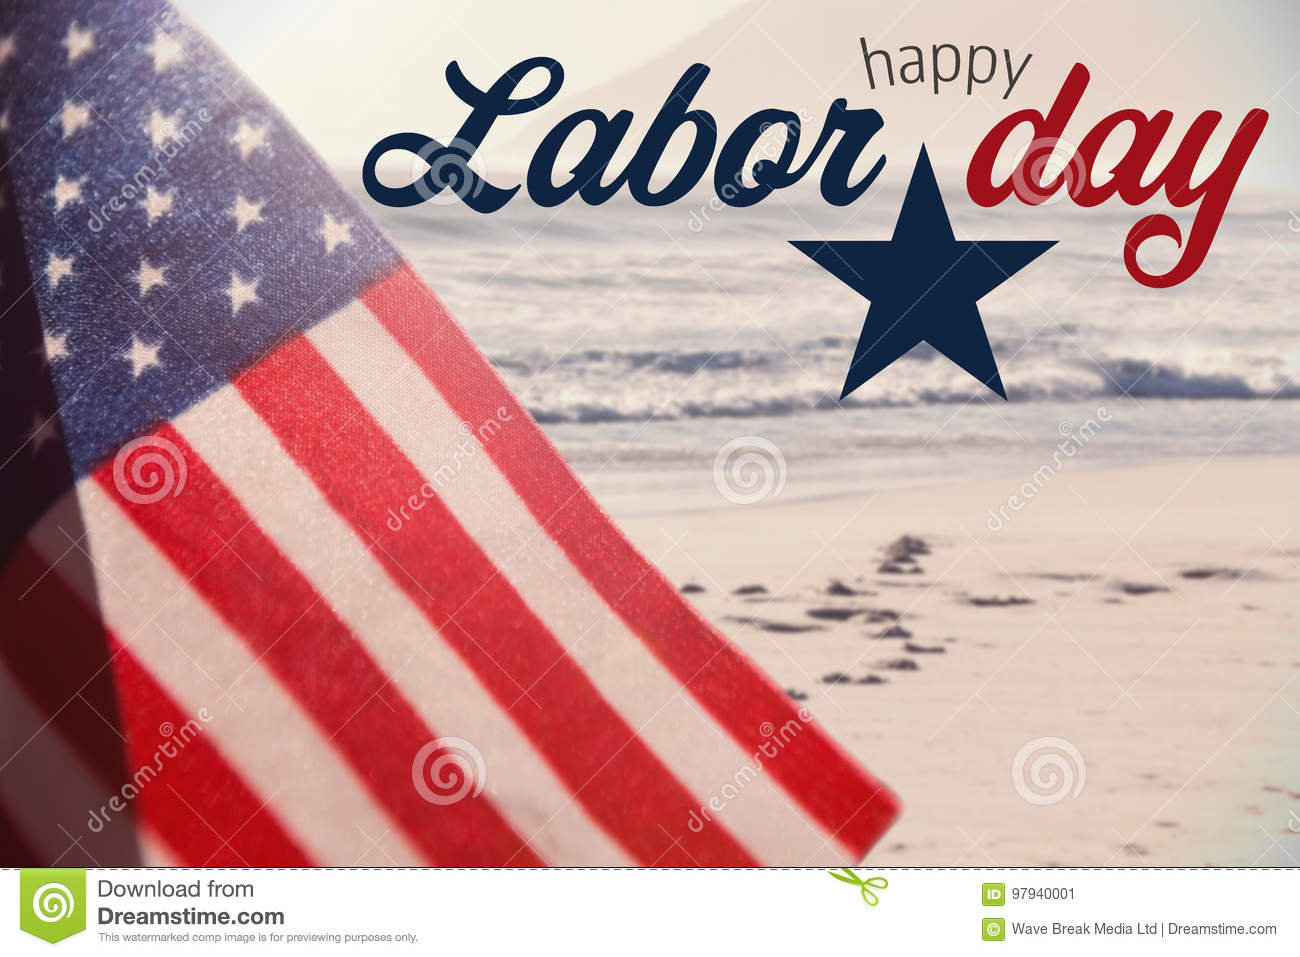 Composite image of digital composite image of happy labor day text with star shape